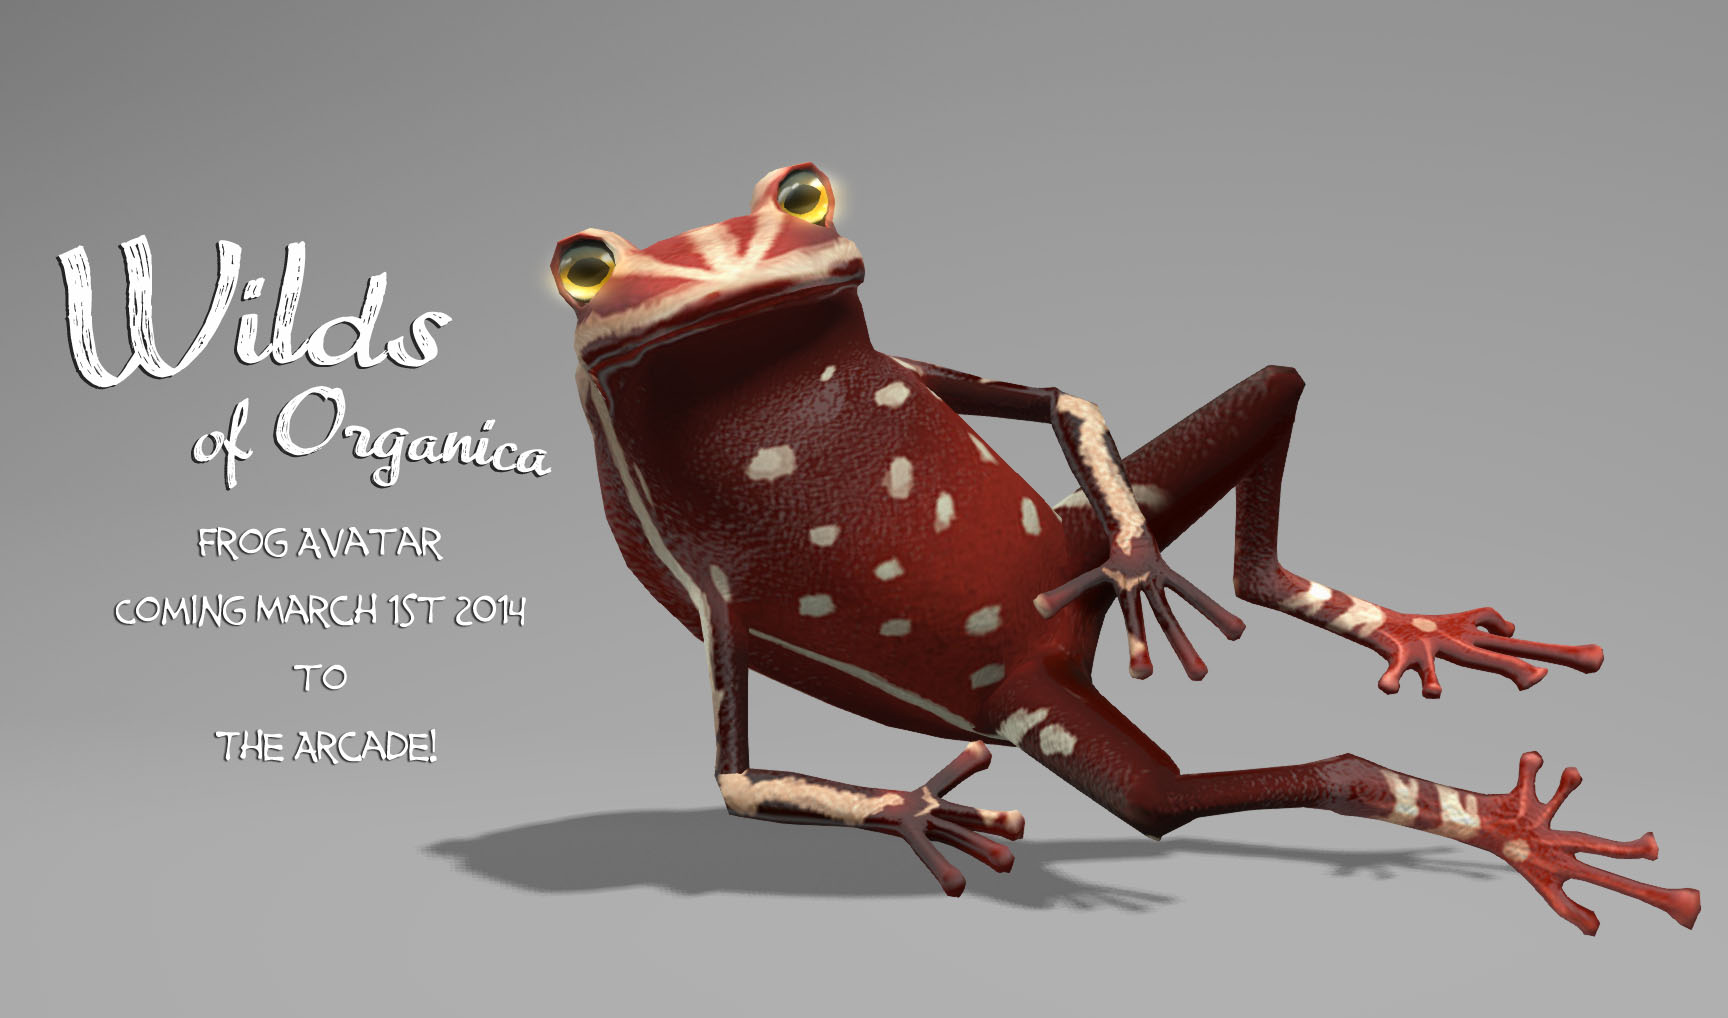 New Frog Avatar for The Arcade March 2014 round!